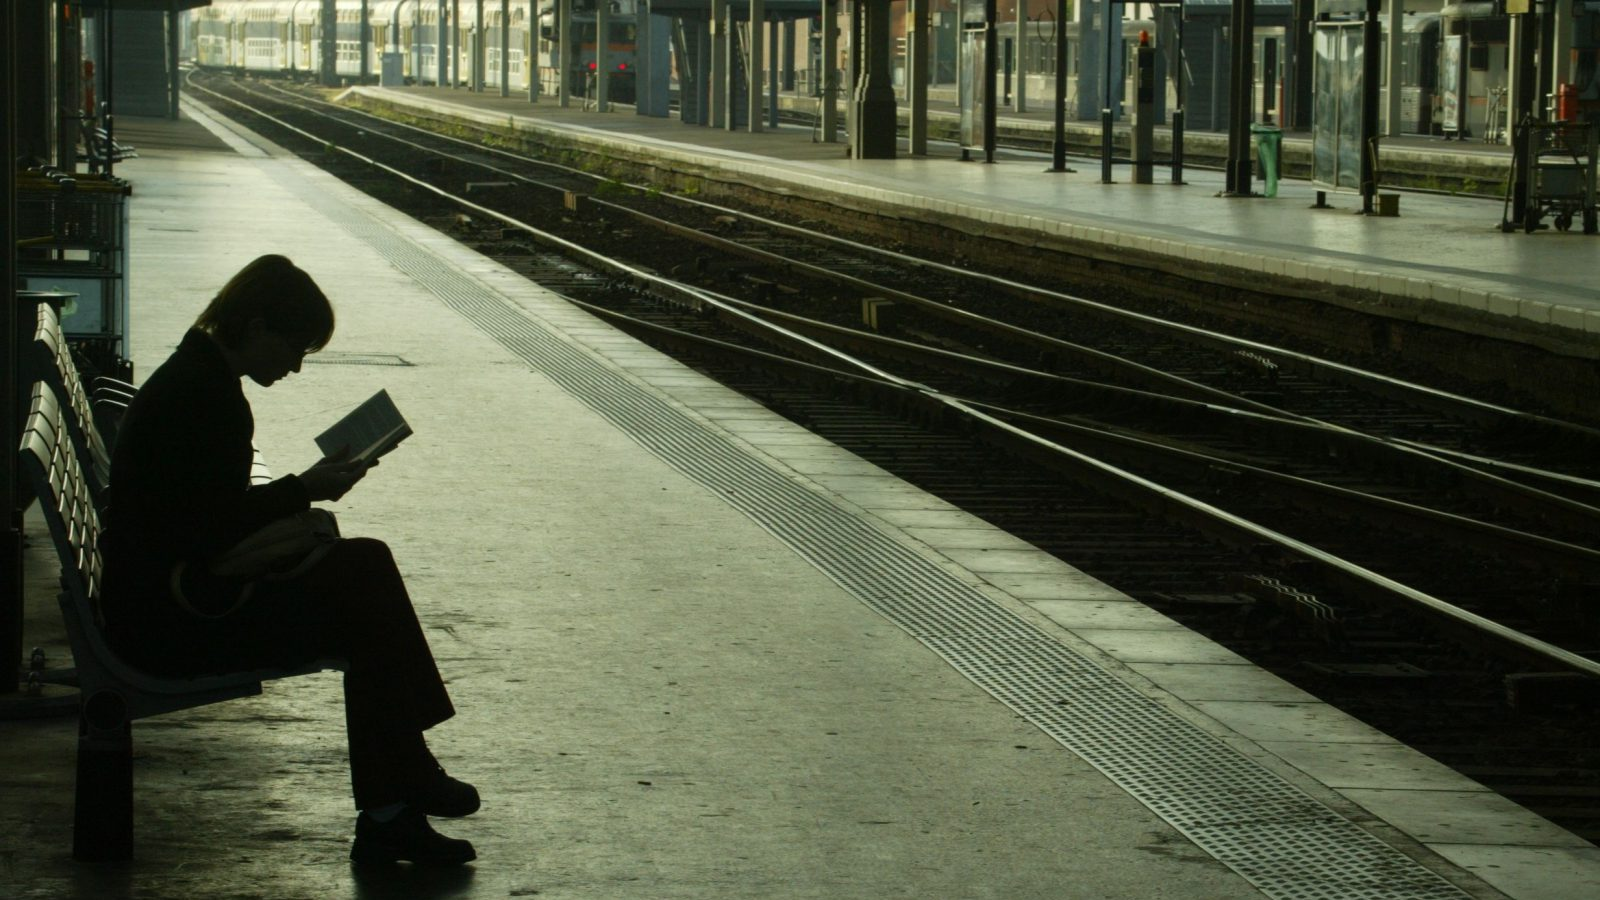 A commuter waiting for a train reads a book at Lille train station in northern France, May 13, 2003. Planes, trains and buses across France ground to a halt on Tuesday, schools were closed and newspapers left unsold as trade unions mobilised a mass one-day protest against planned pension reforms.